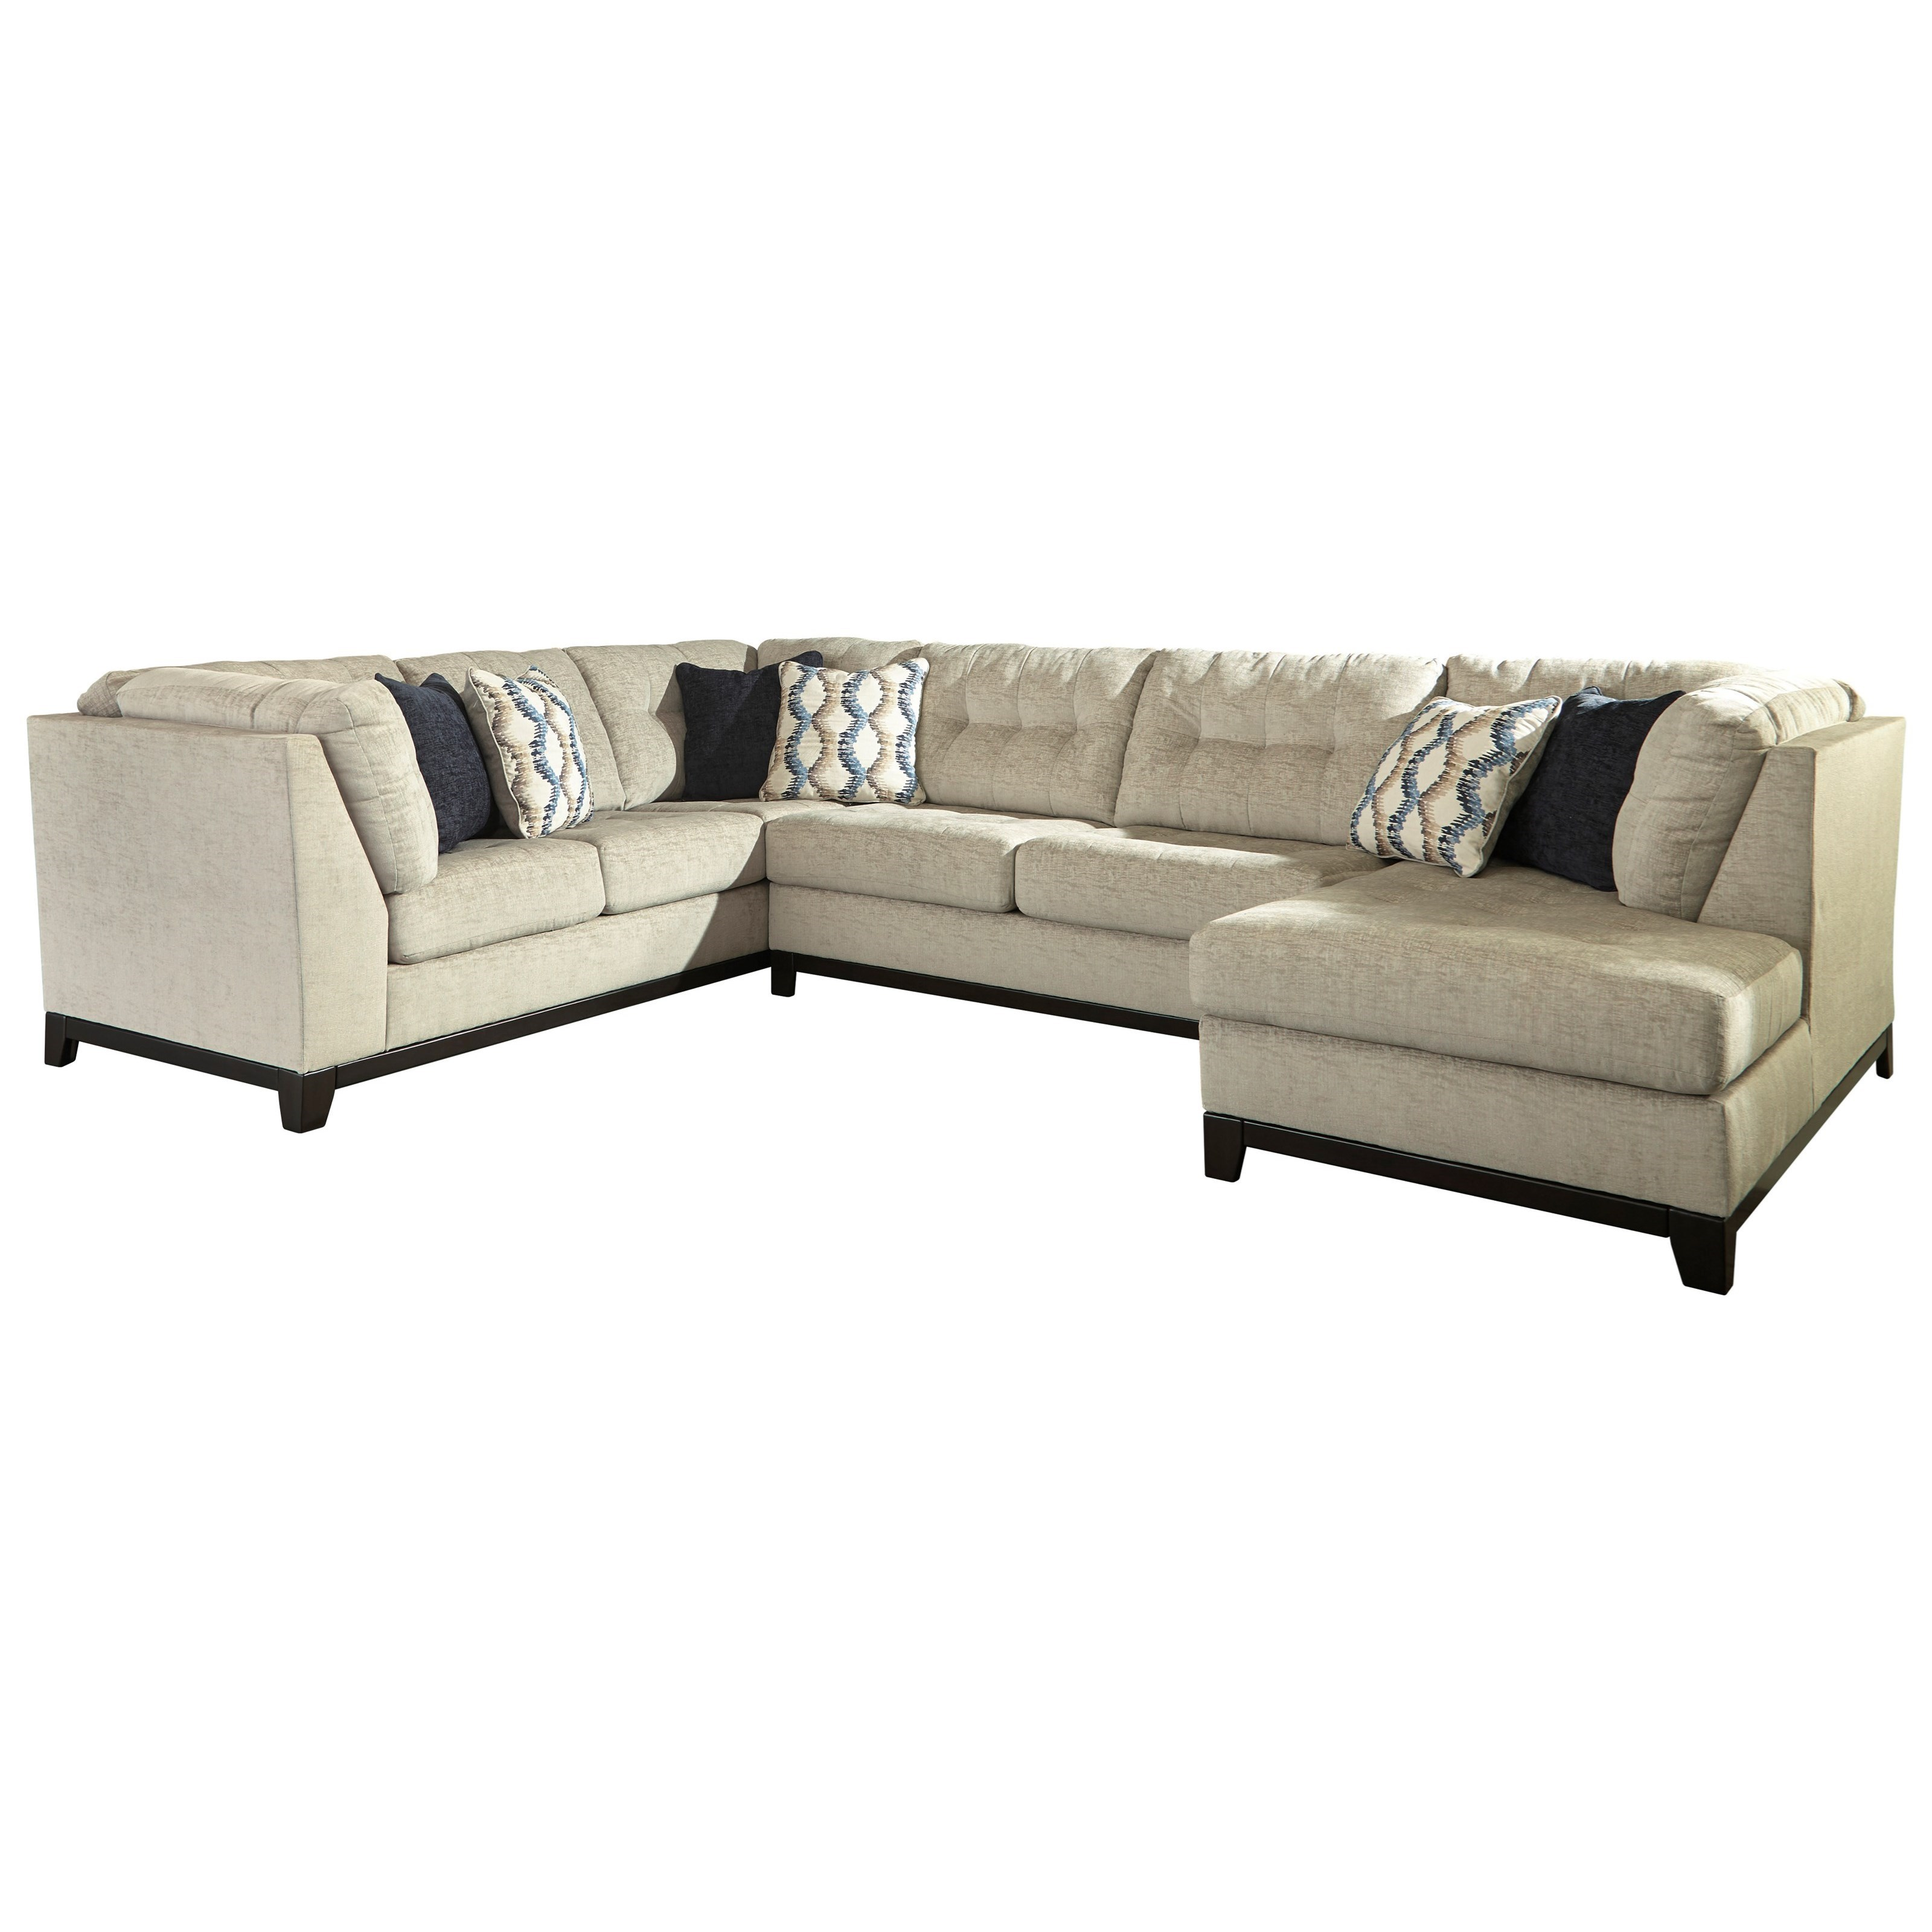 Benchcraft Beckendorf 3-Piece Sectional with Right Chaise - Household Furniture - Sectional Sofas  sc 1 st  Household Furniture : 3 piece sectional couches - Sectionals, Sofas & Couches